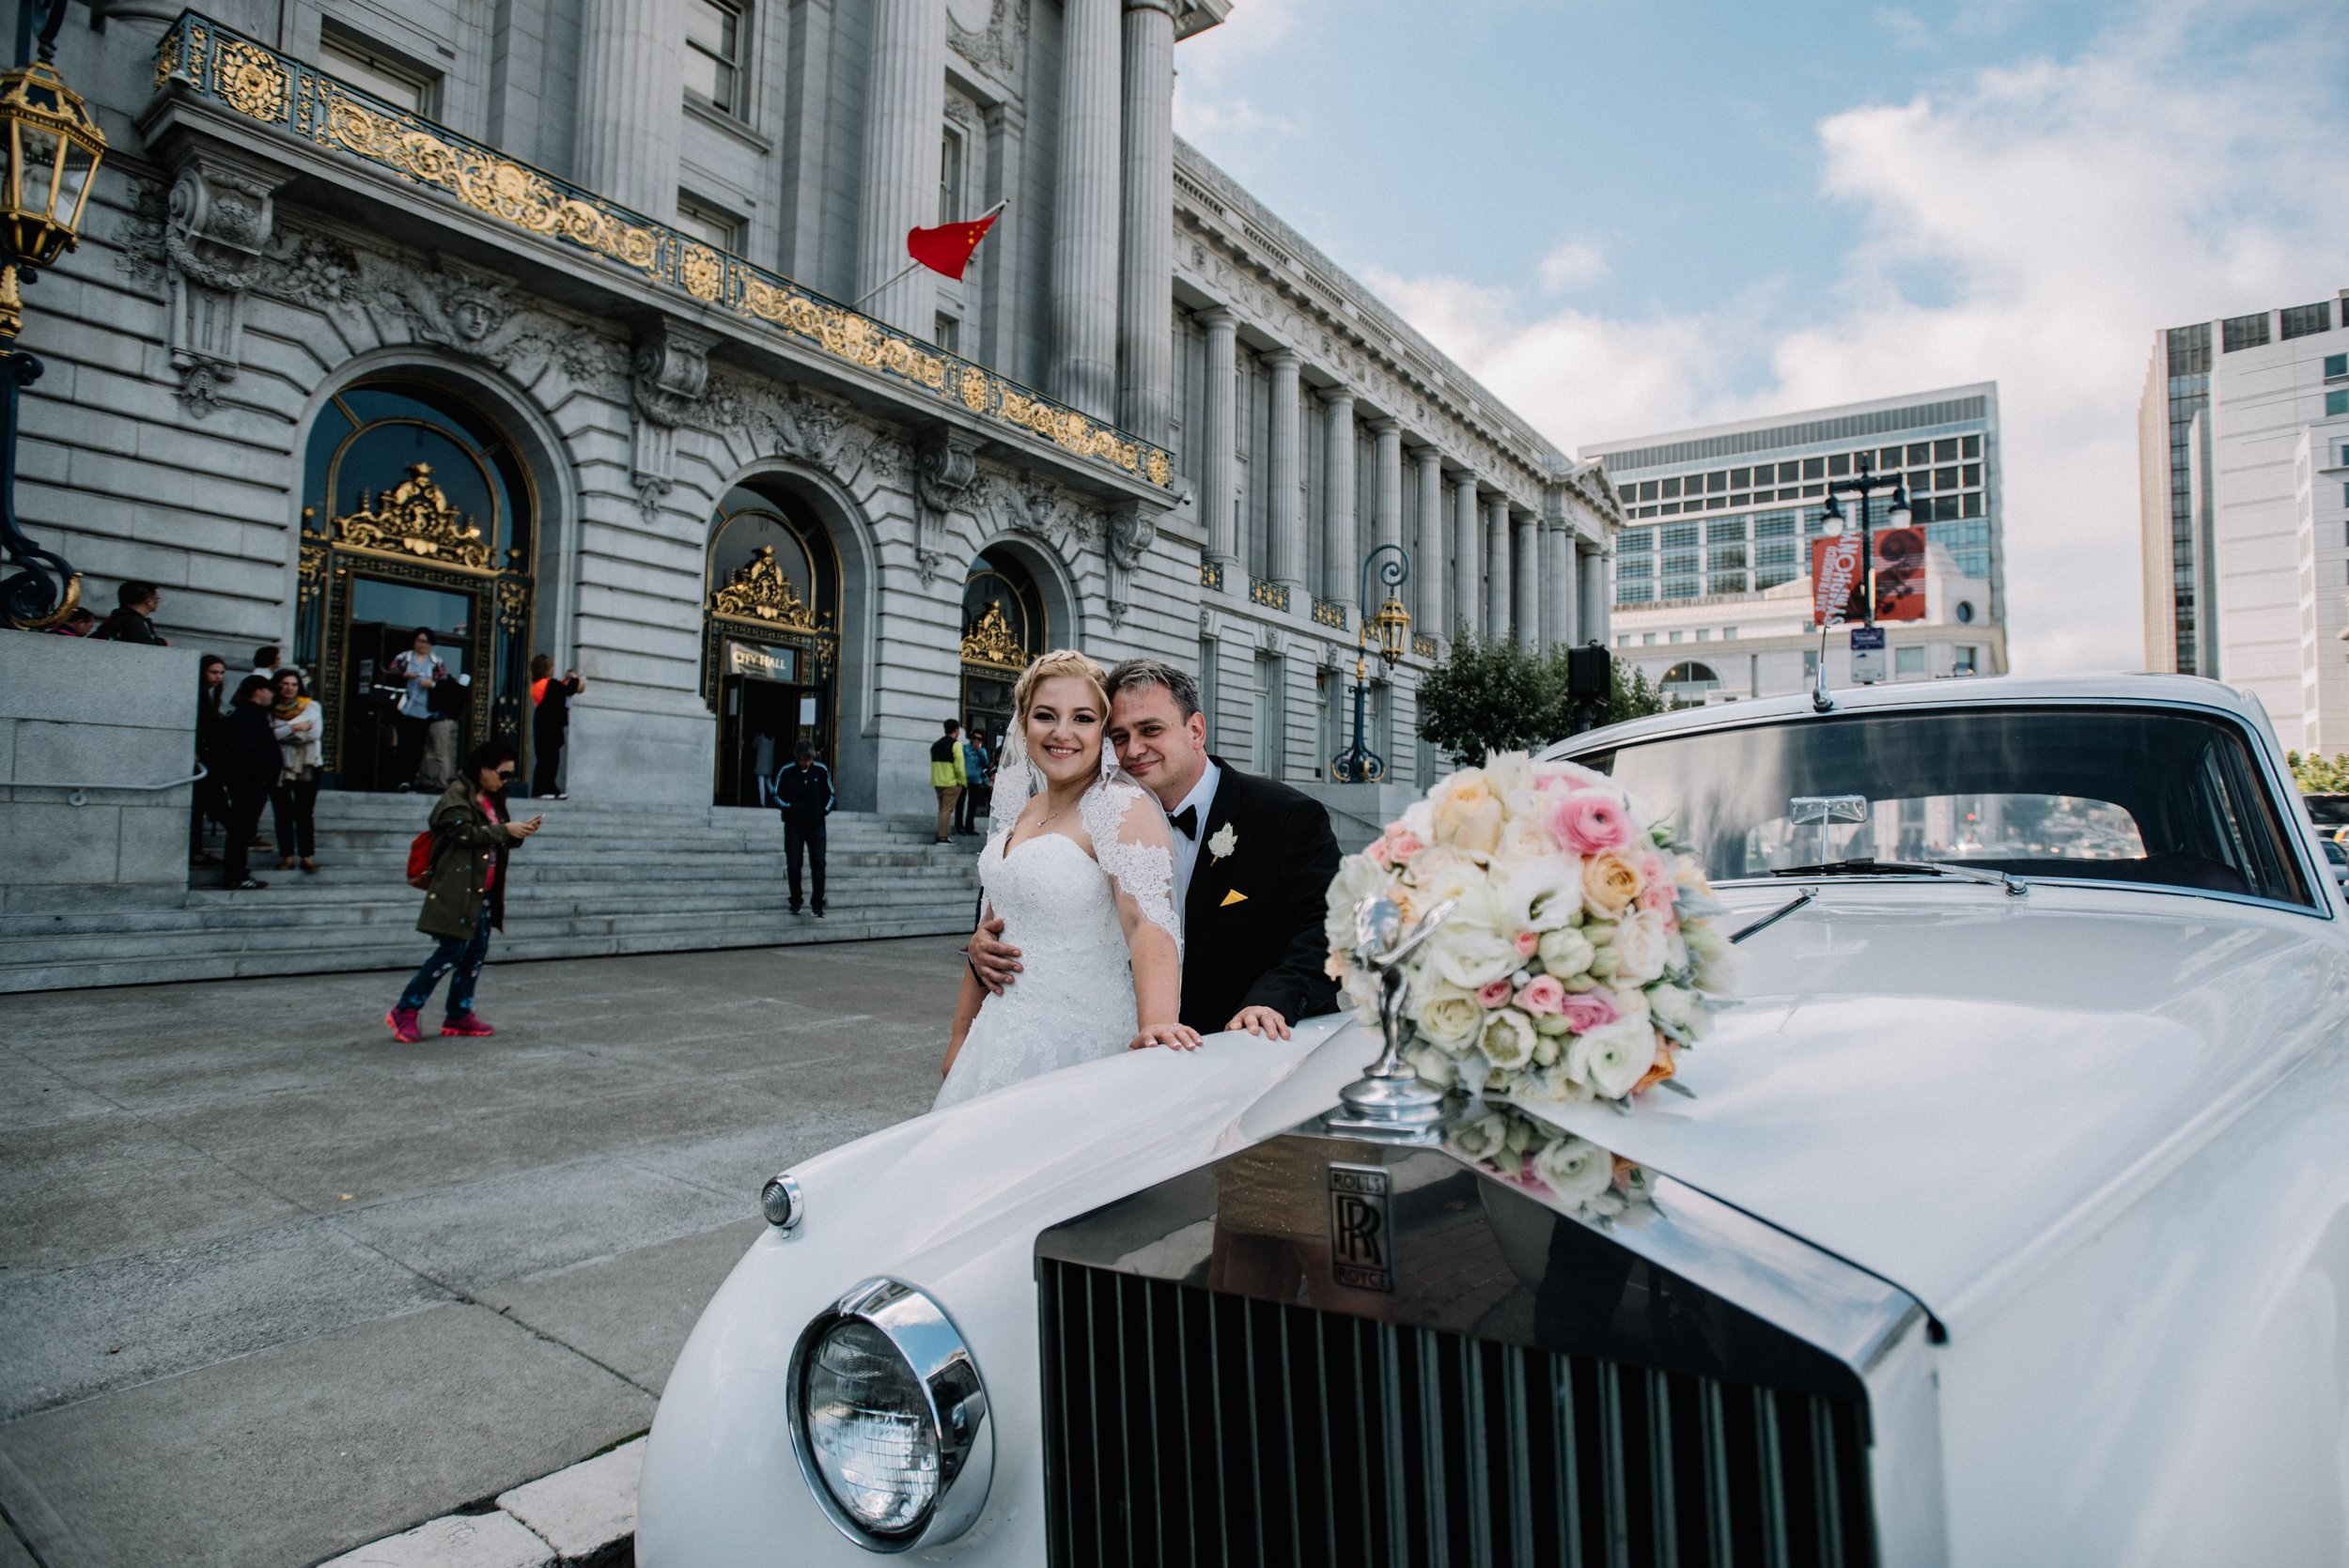 Vinty-classic-car-hire-wedding-San-Francisco-min.jpg